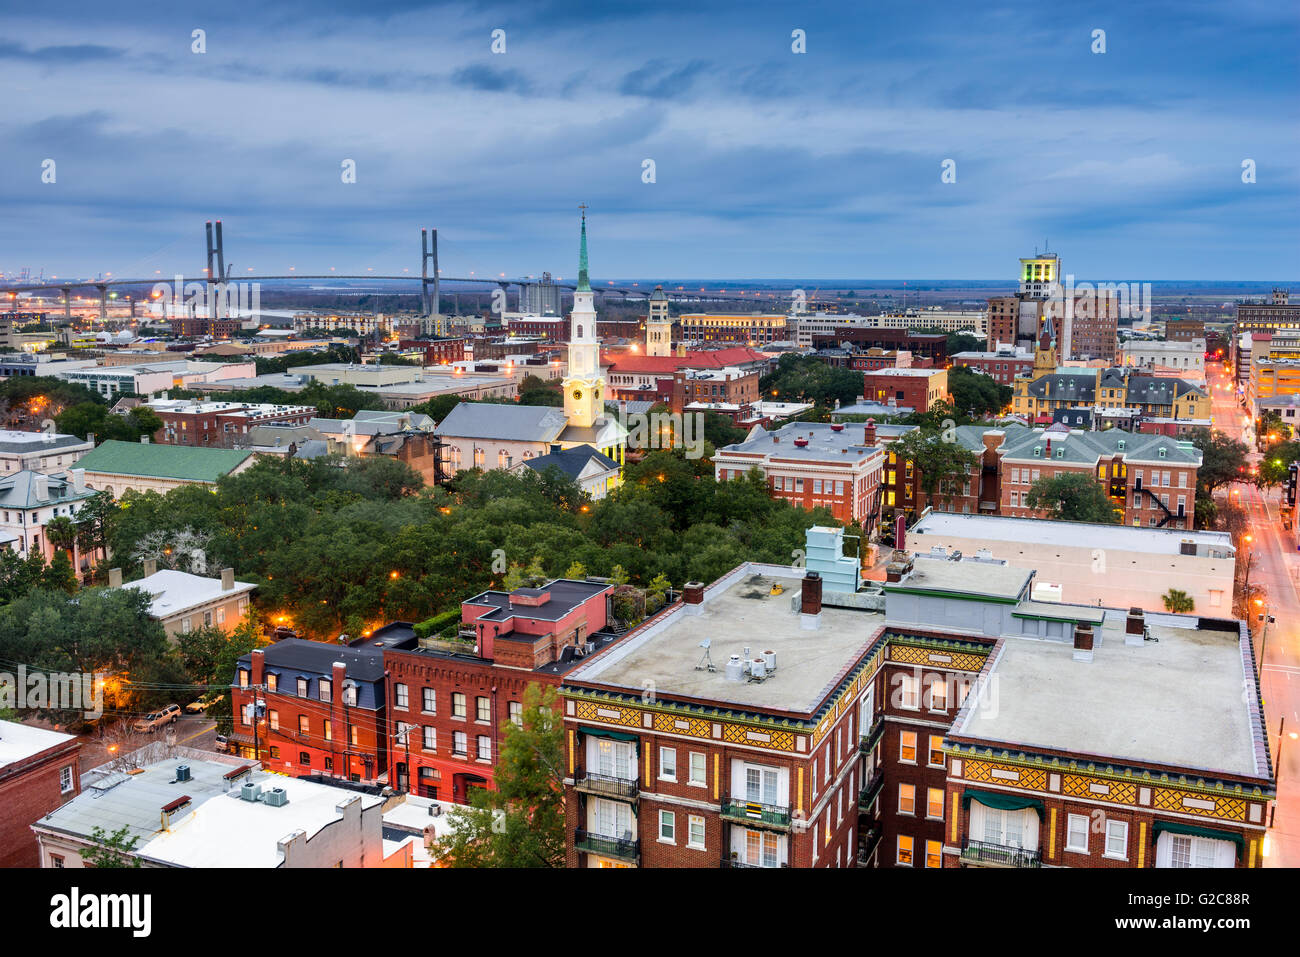 Savannah, Georgia, USA downtown skyline. - Stock Image